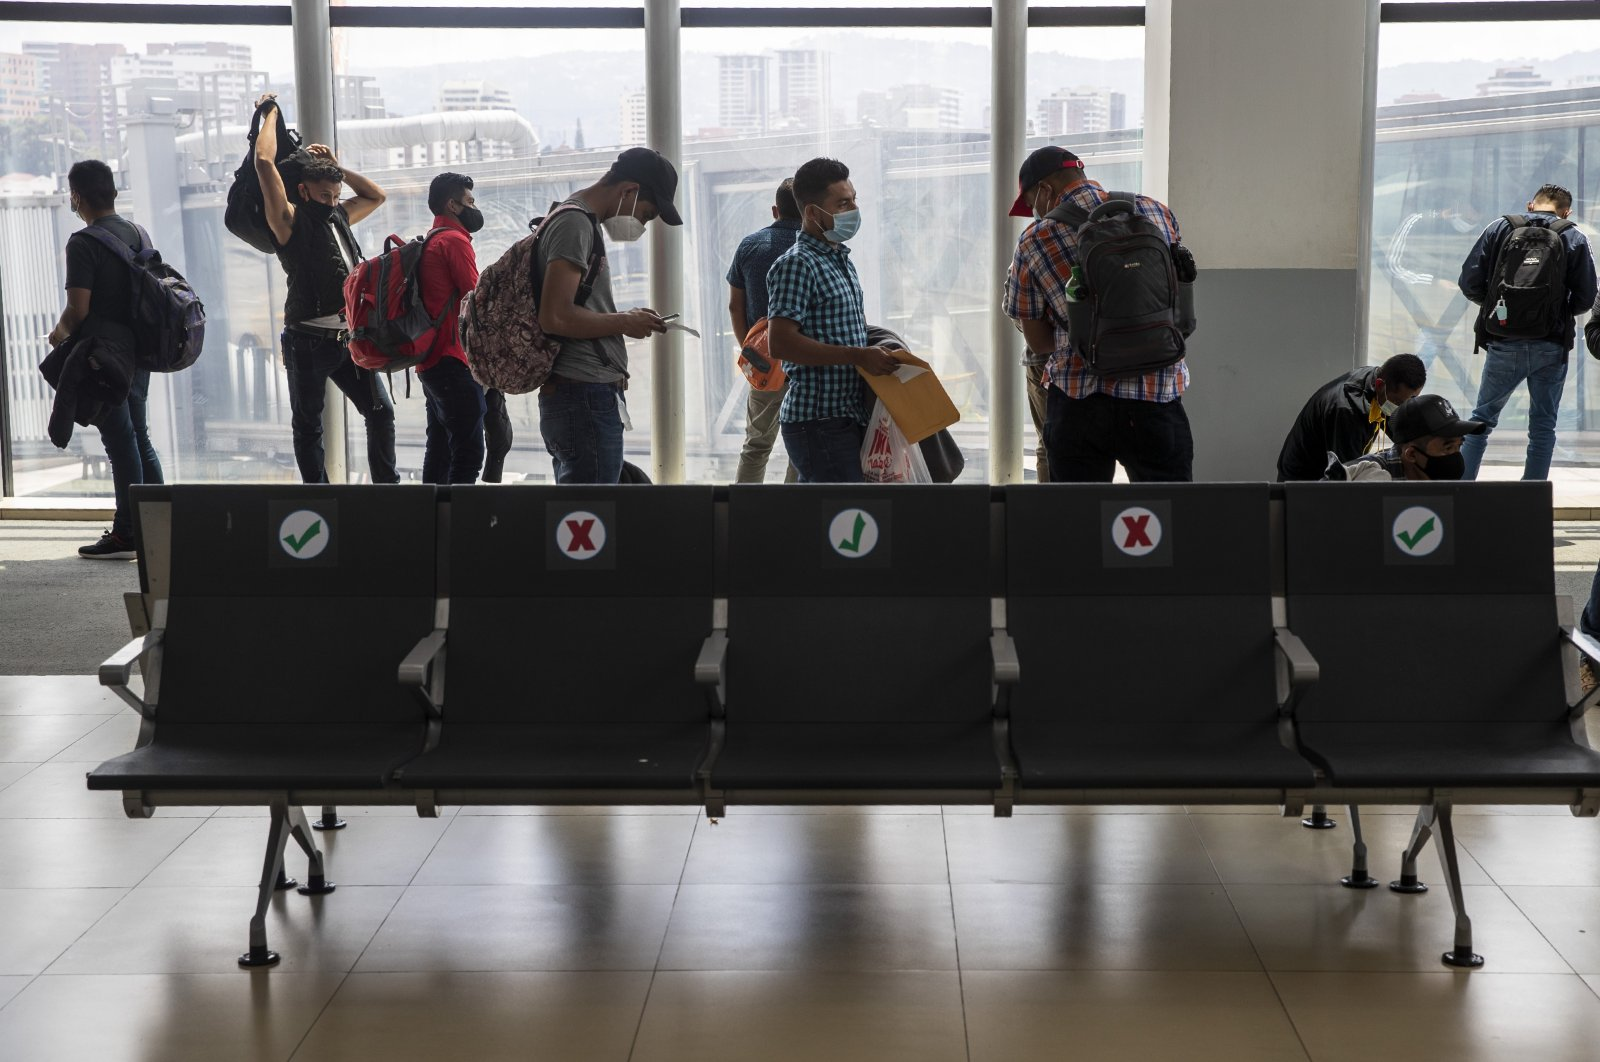 Passengers wait to board a humanitarian flight to Canada at the La Aurora international airport in Guatemala City, Sept. 17, 2020. (AP Photo)